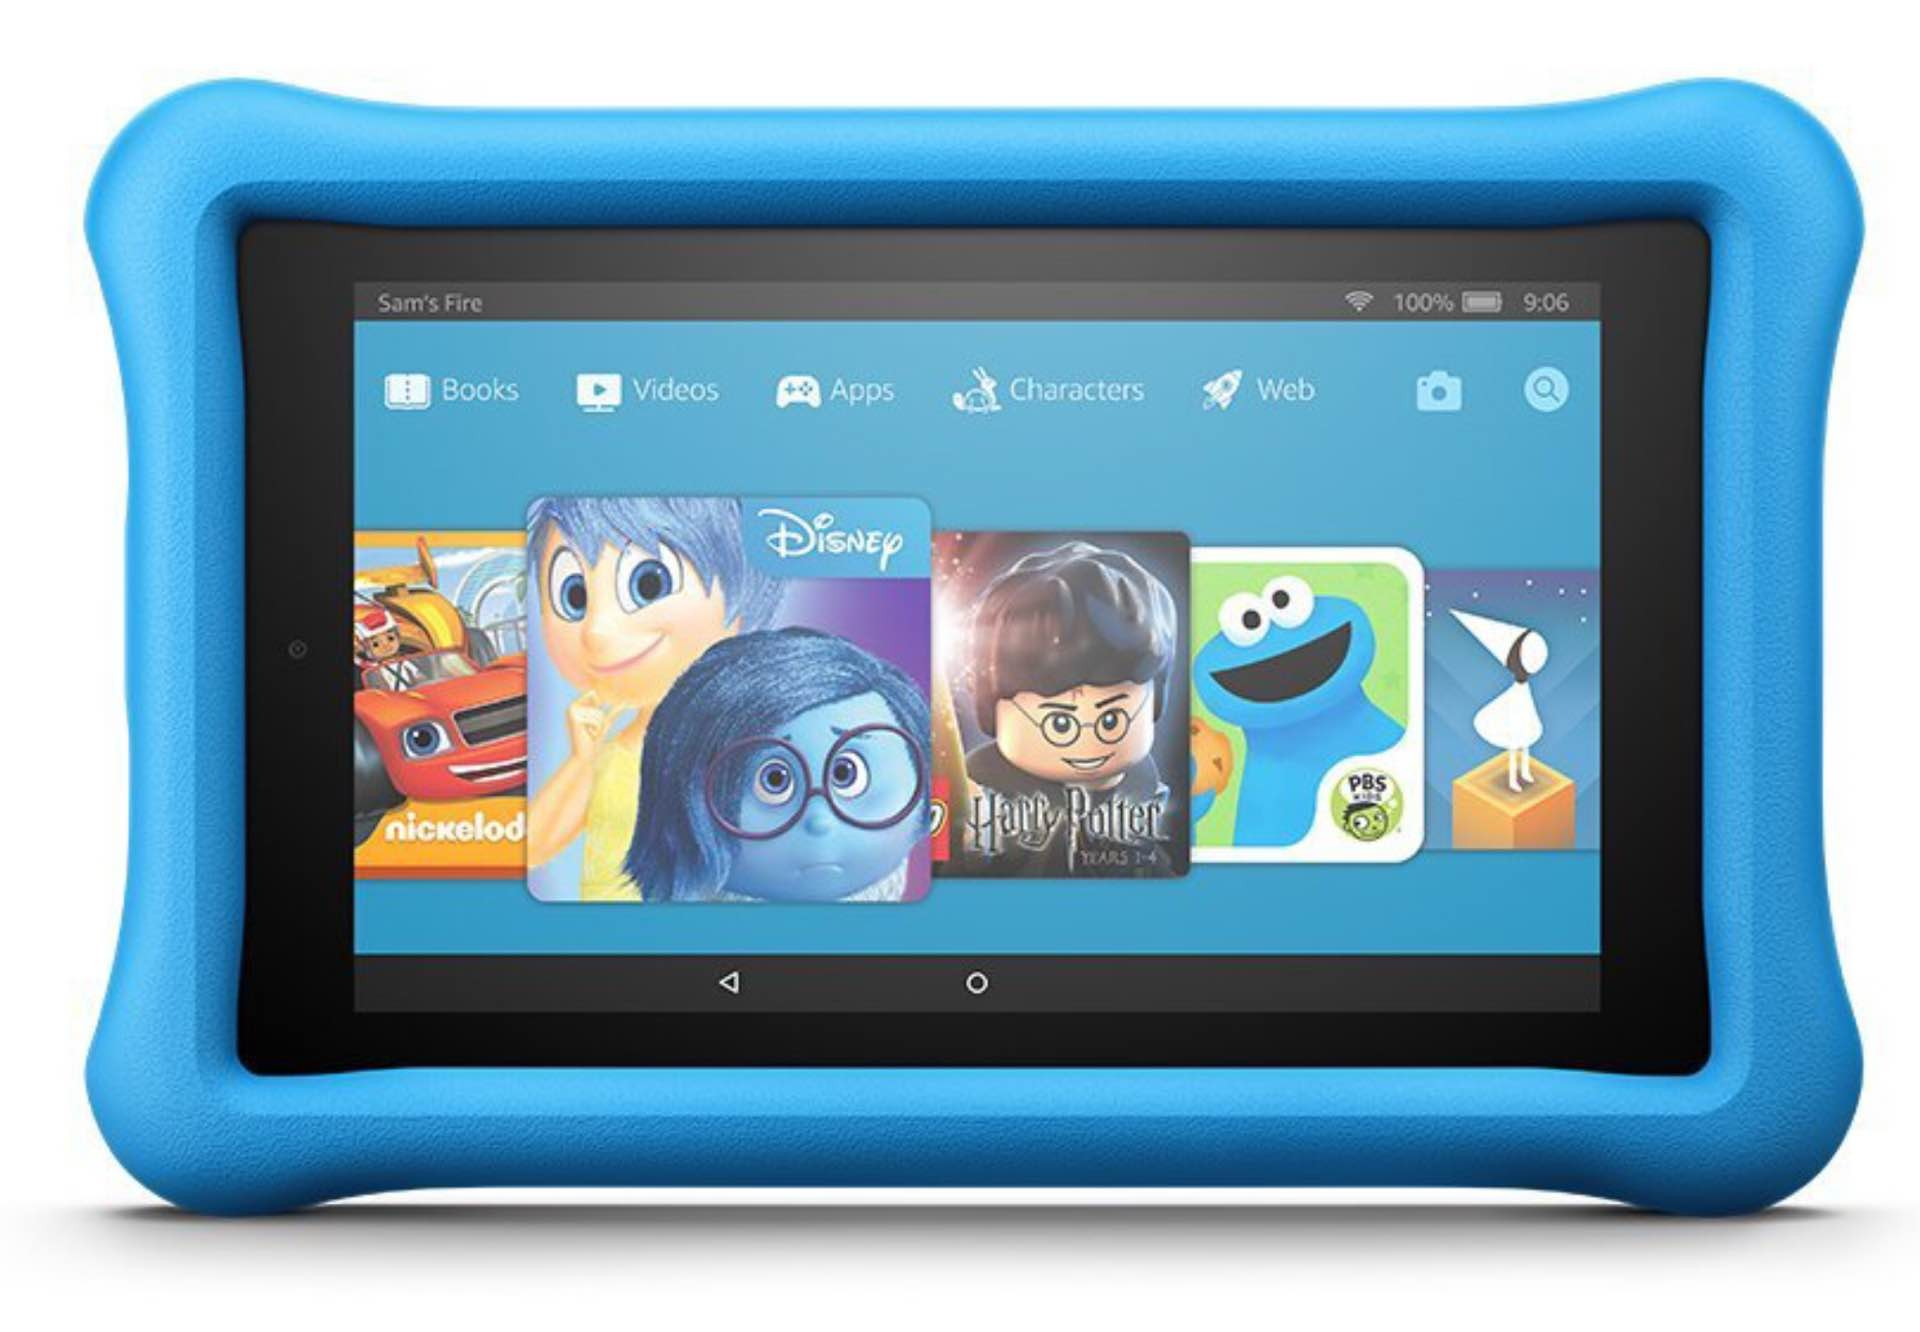 The Kindle Fire 7 — Kids Edition tablet. ($80)